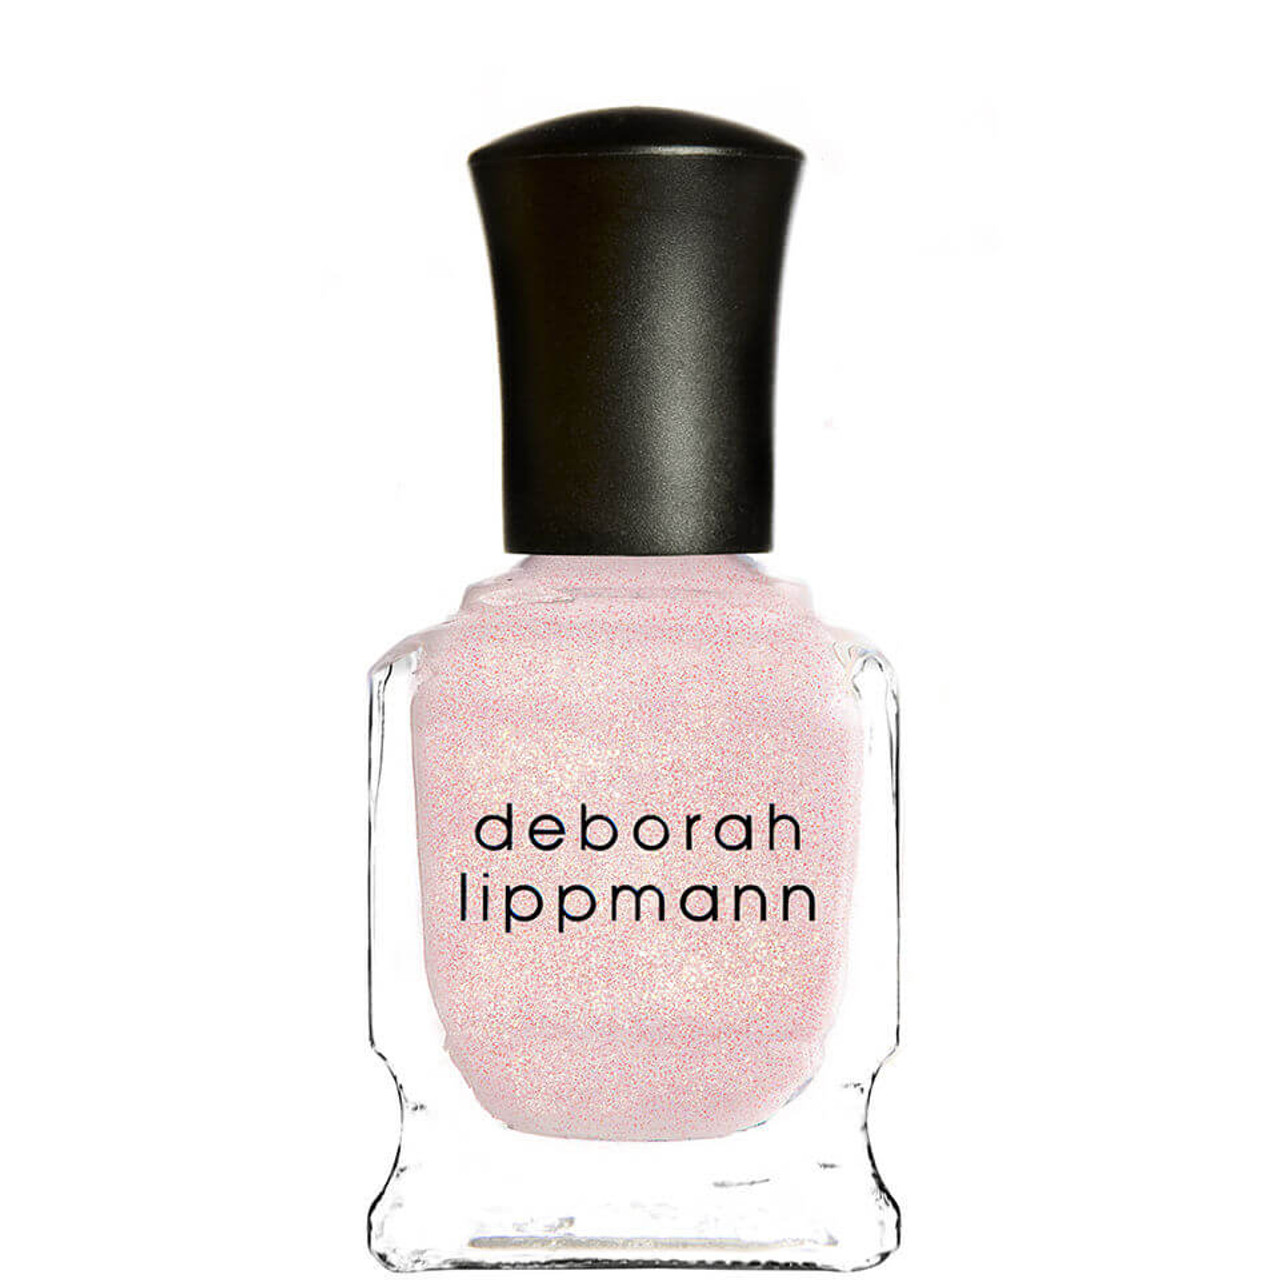 Deborah Lippmann Nail Polish - La Vie En Rose 15 mL  Deborah Lippmann Nail Polish in La Vie en Rose is a luxury, treatment-enriched fashion nail polish. All Deborah Lippmann nail polishes are infused with ingredients such as biotin, green tea extract, and aucoumea for treatment benefits. These formulas are long lasting, dry quickly, and apply evenly. The result is a crème finish that's smooth, glossy, and rich in color.